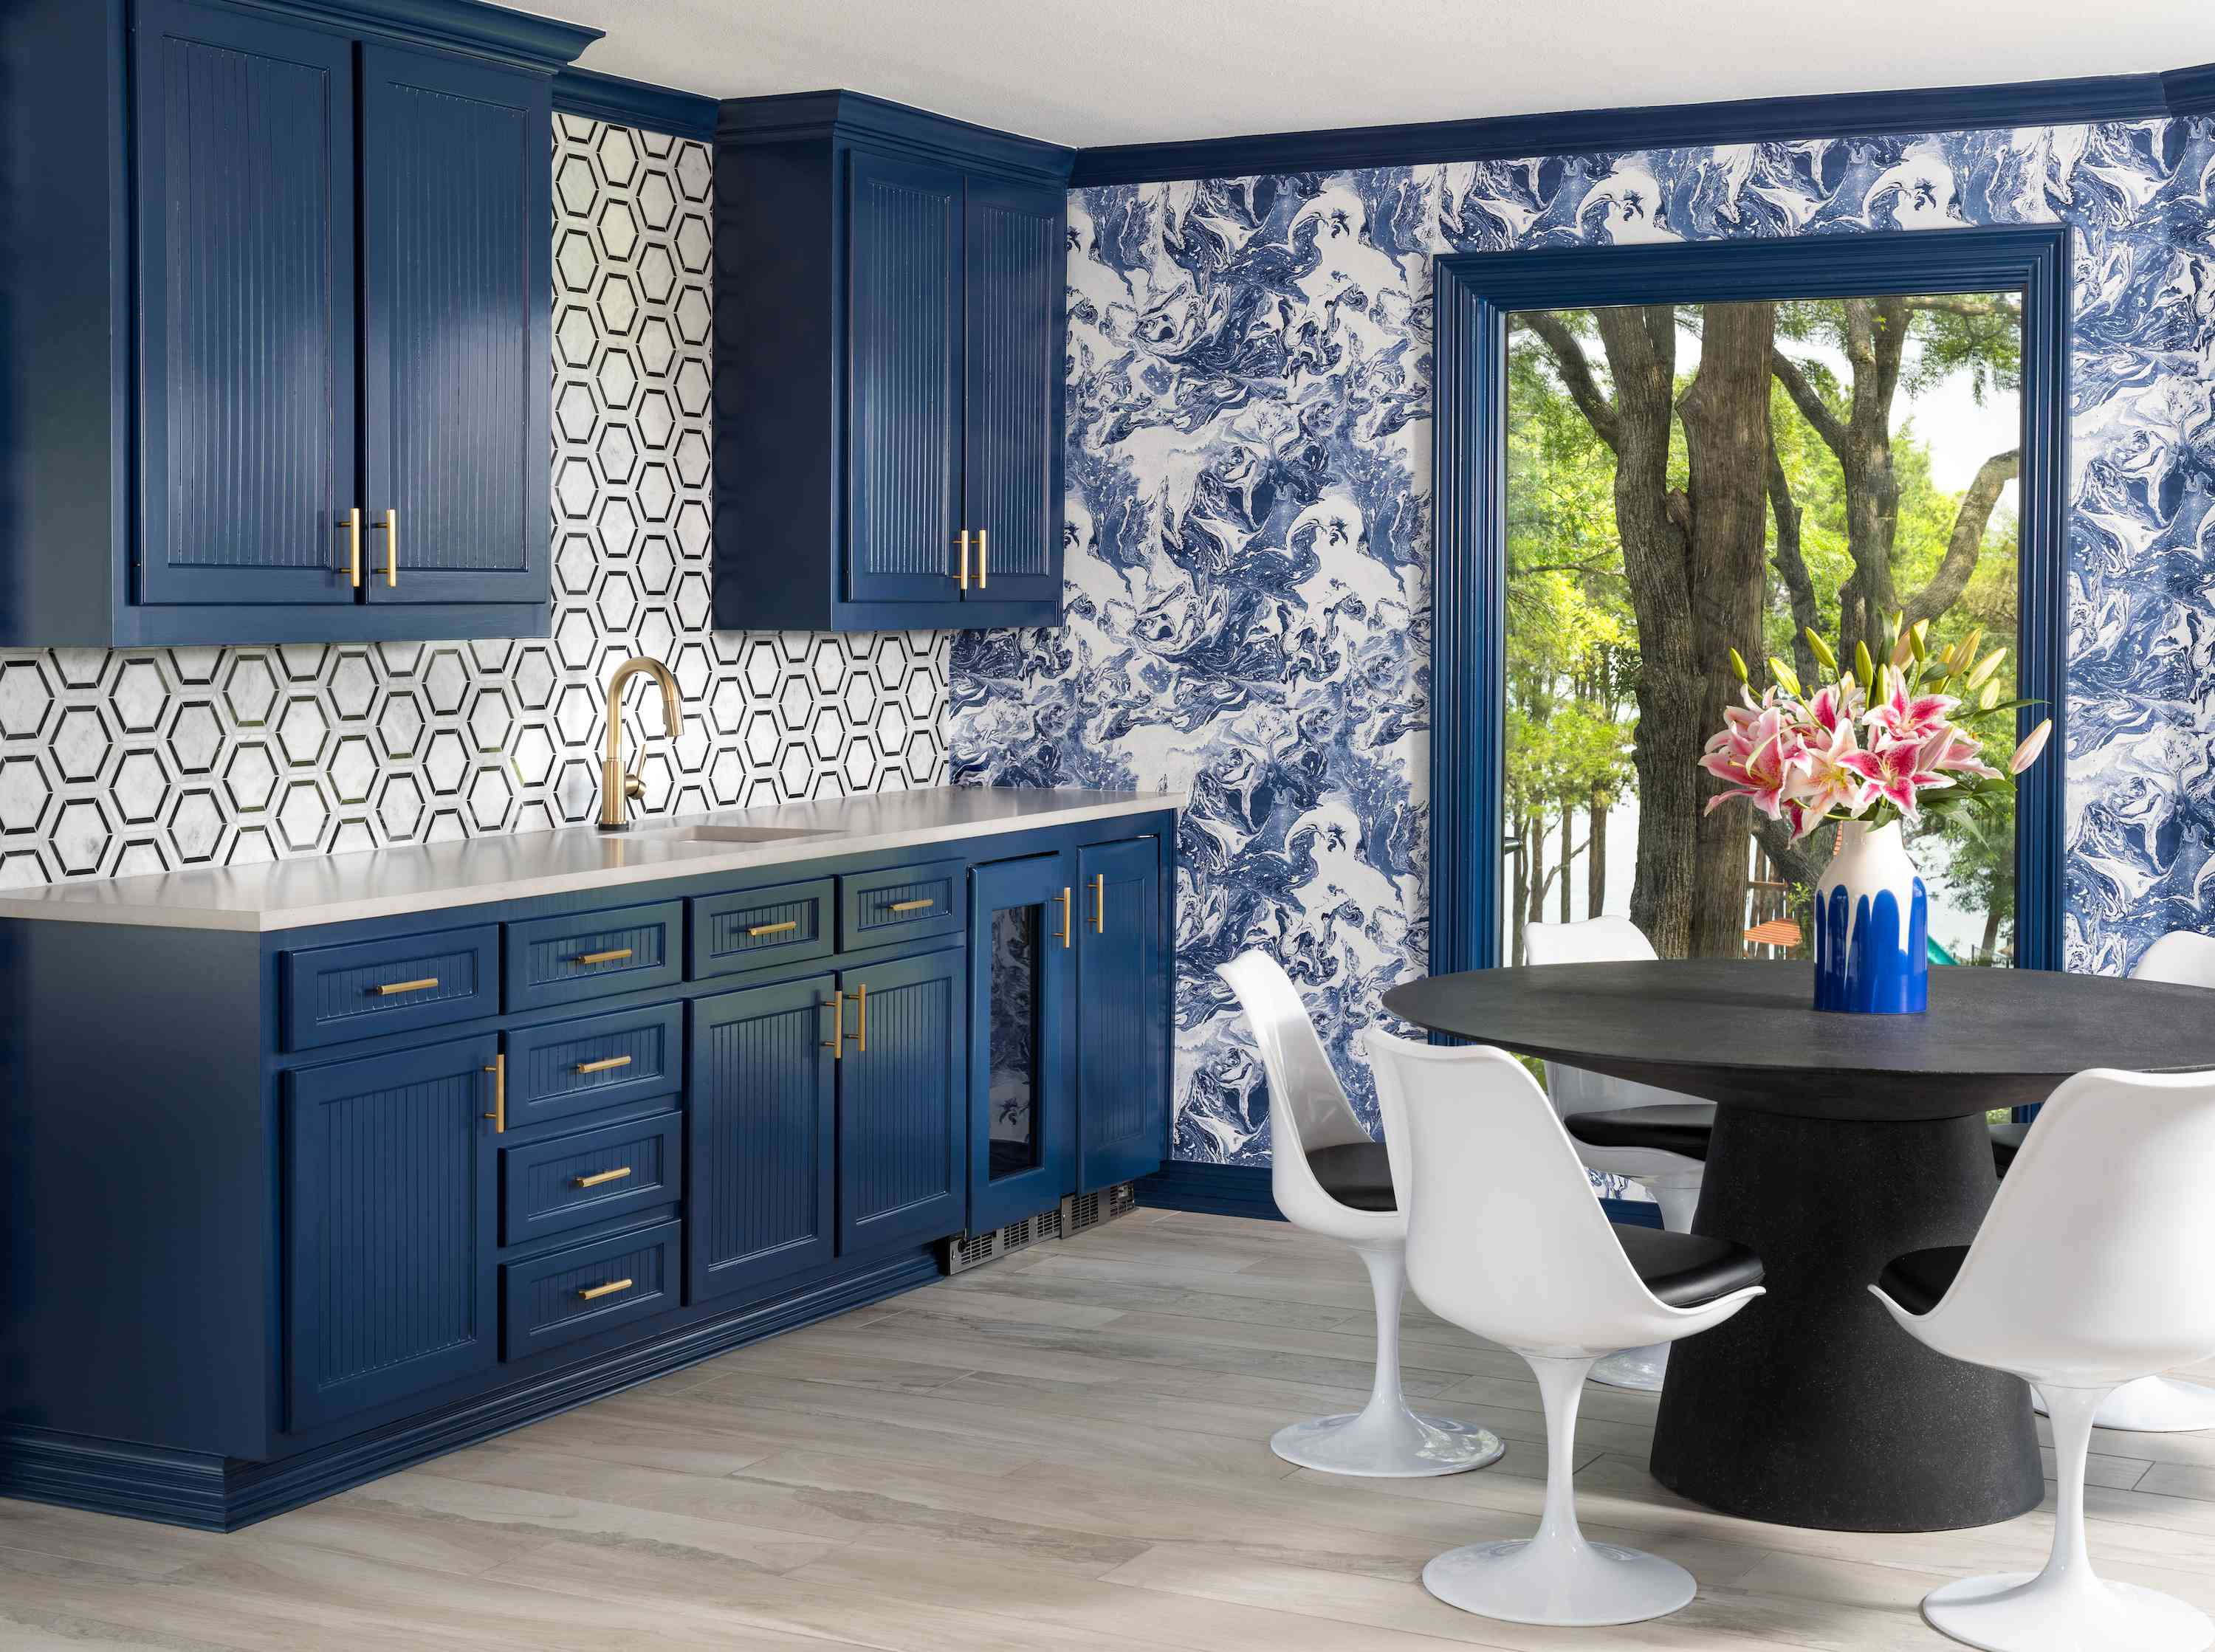 Kitchen and dining with blue patterened wallpaper.